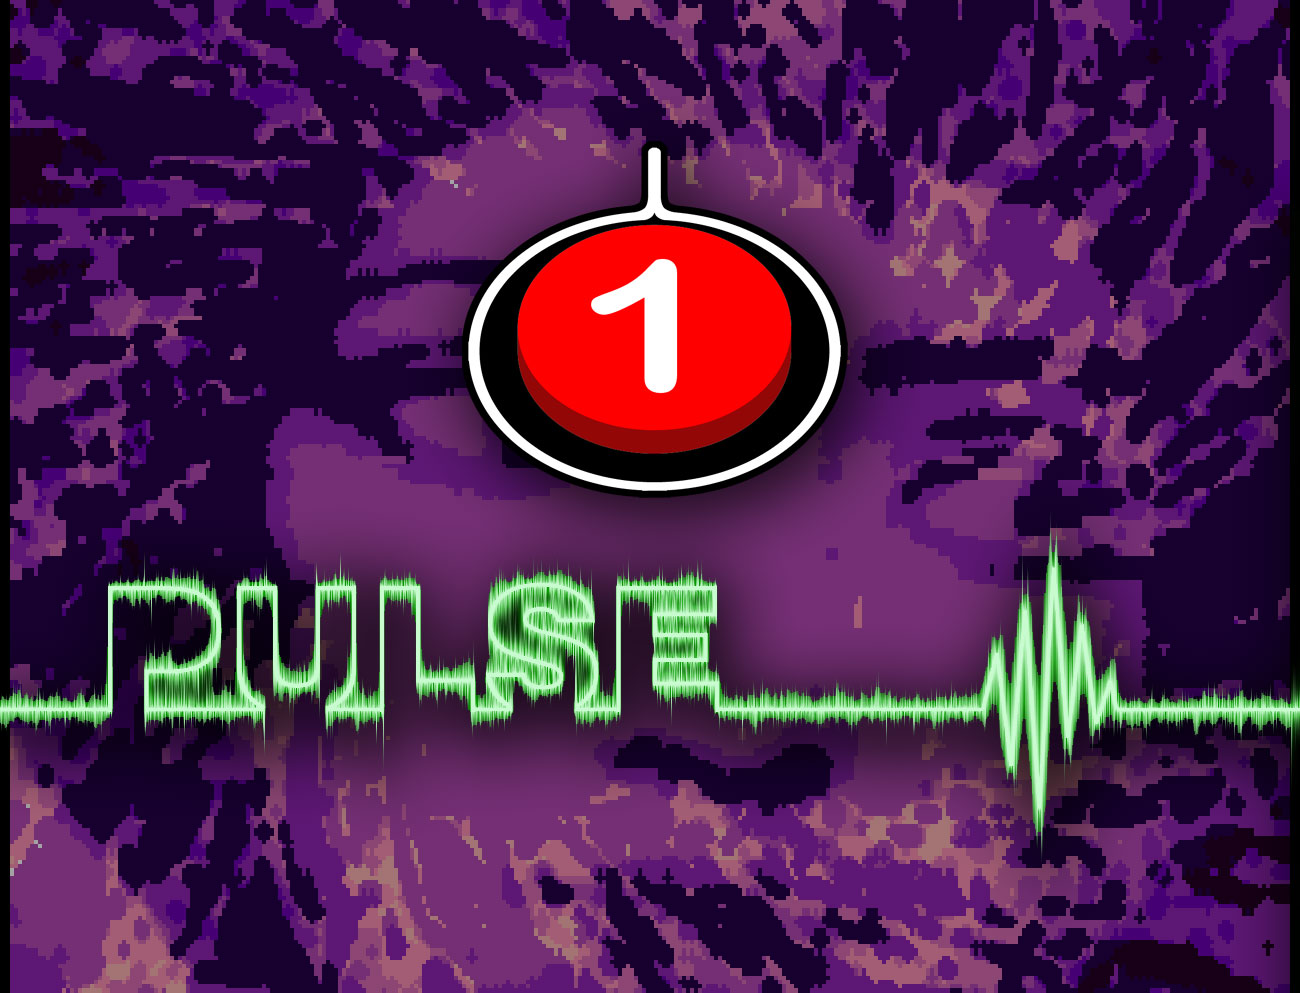 One Switch logo. Pulse logo. Behind a Woman looking right in a purple swirl.